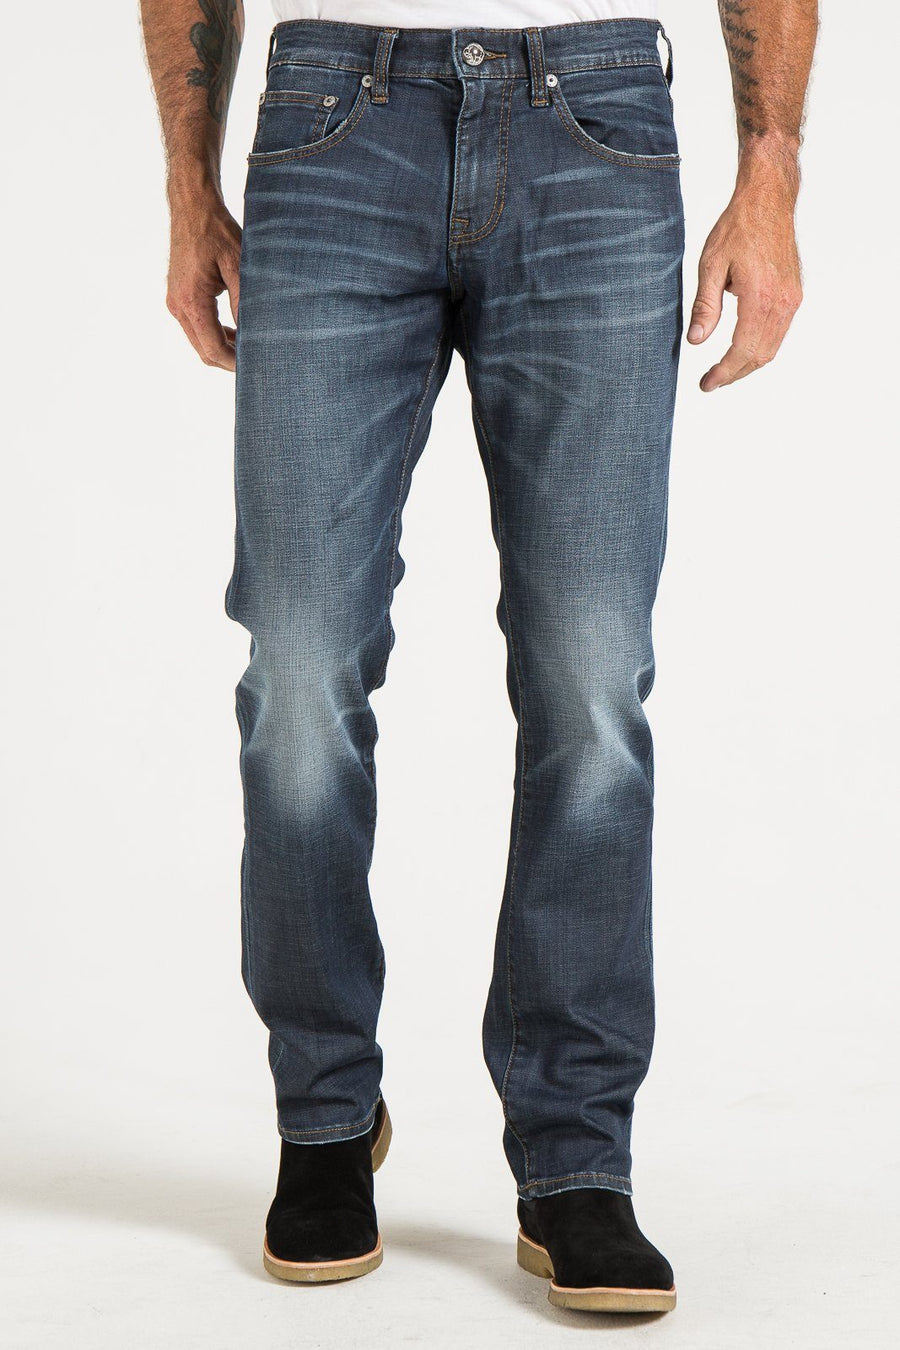 BARFLY SLIM IN GARDINER WASHED INDIGO DENIM